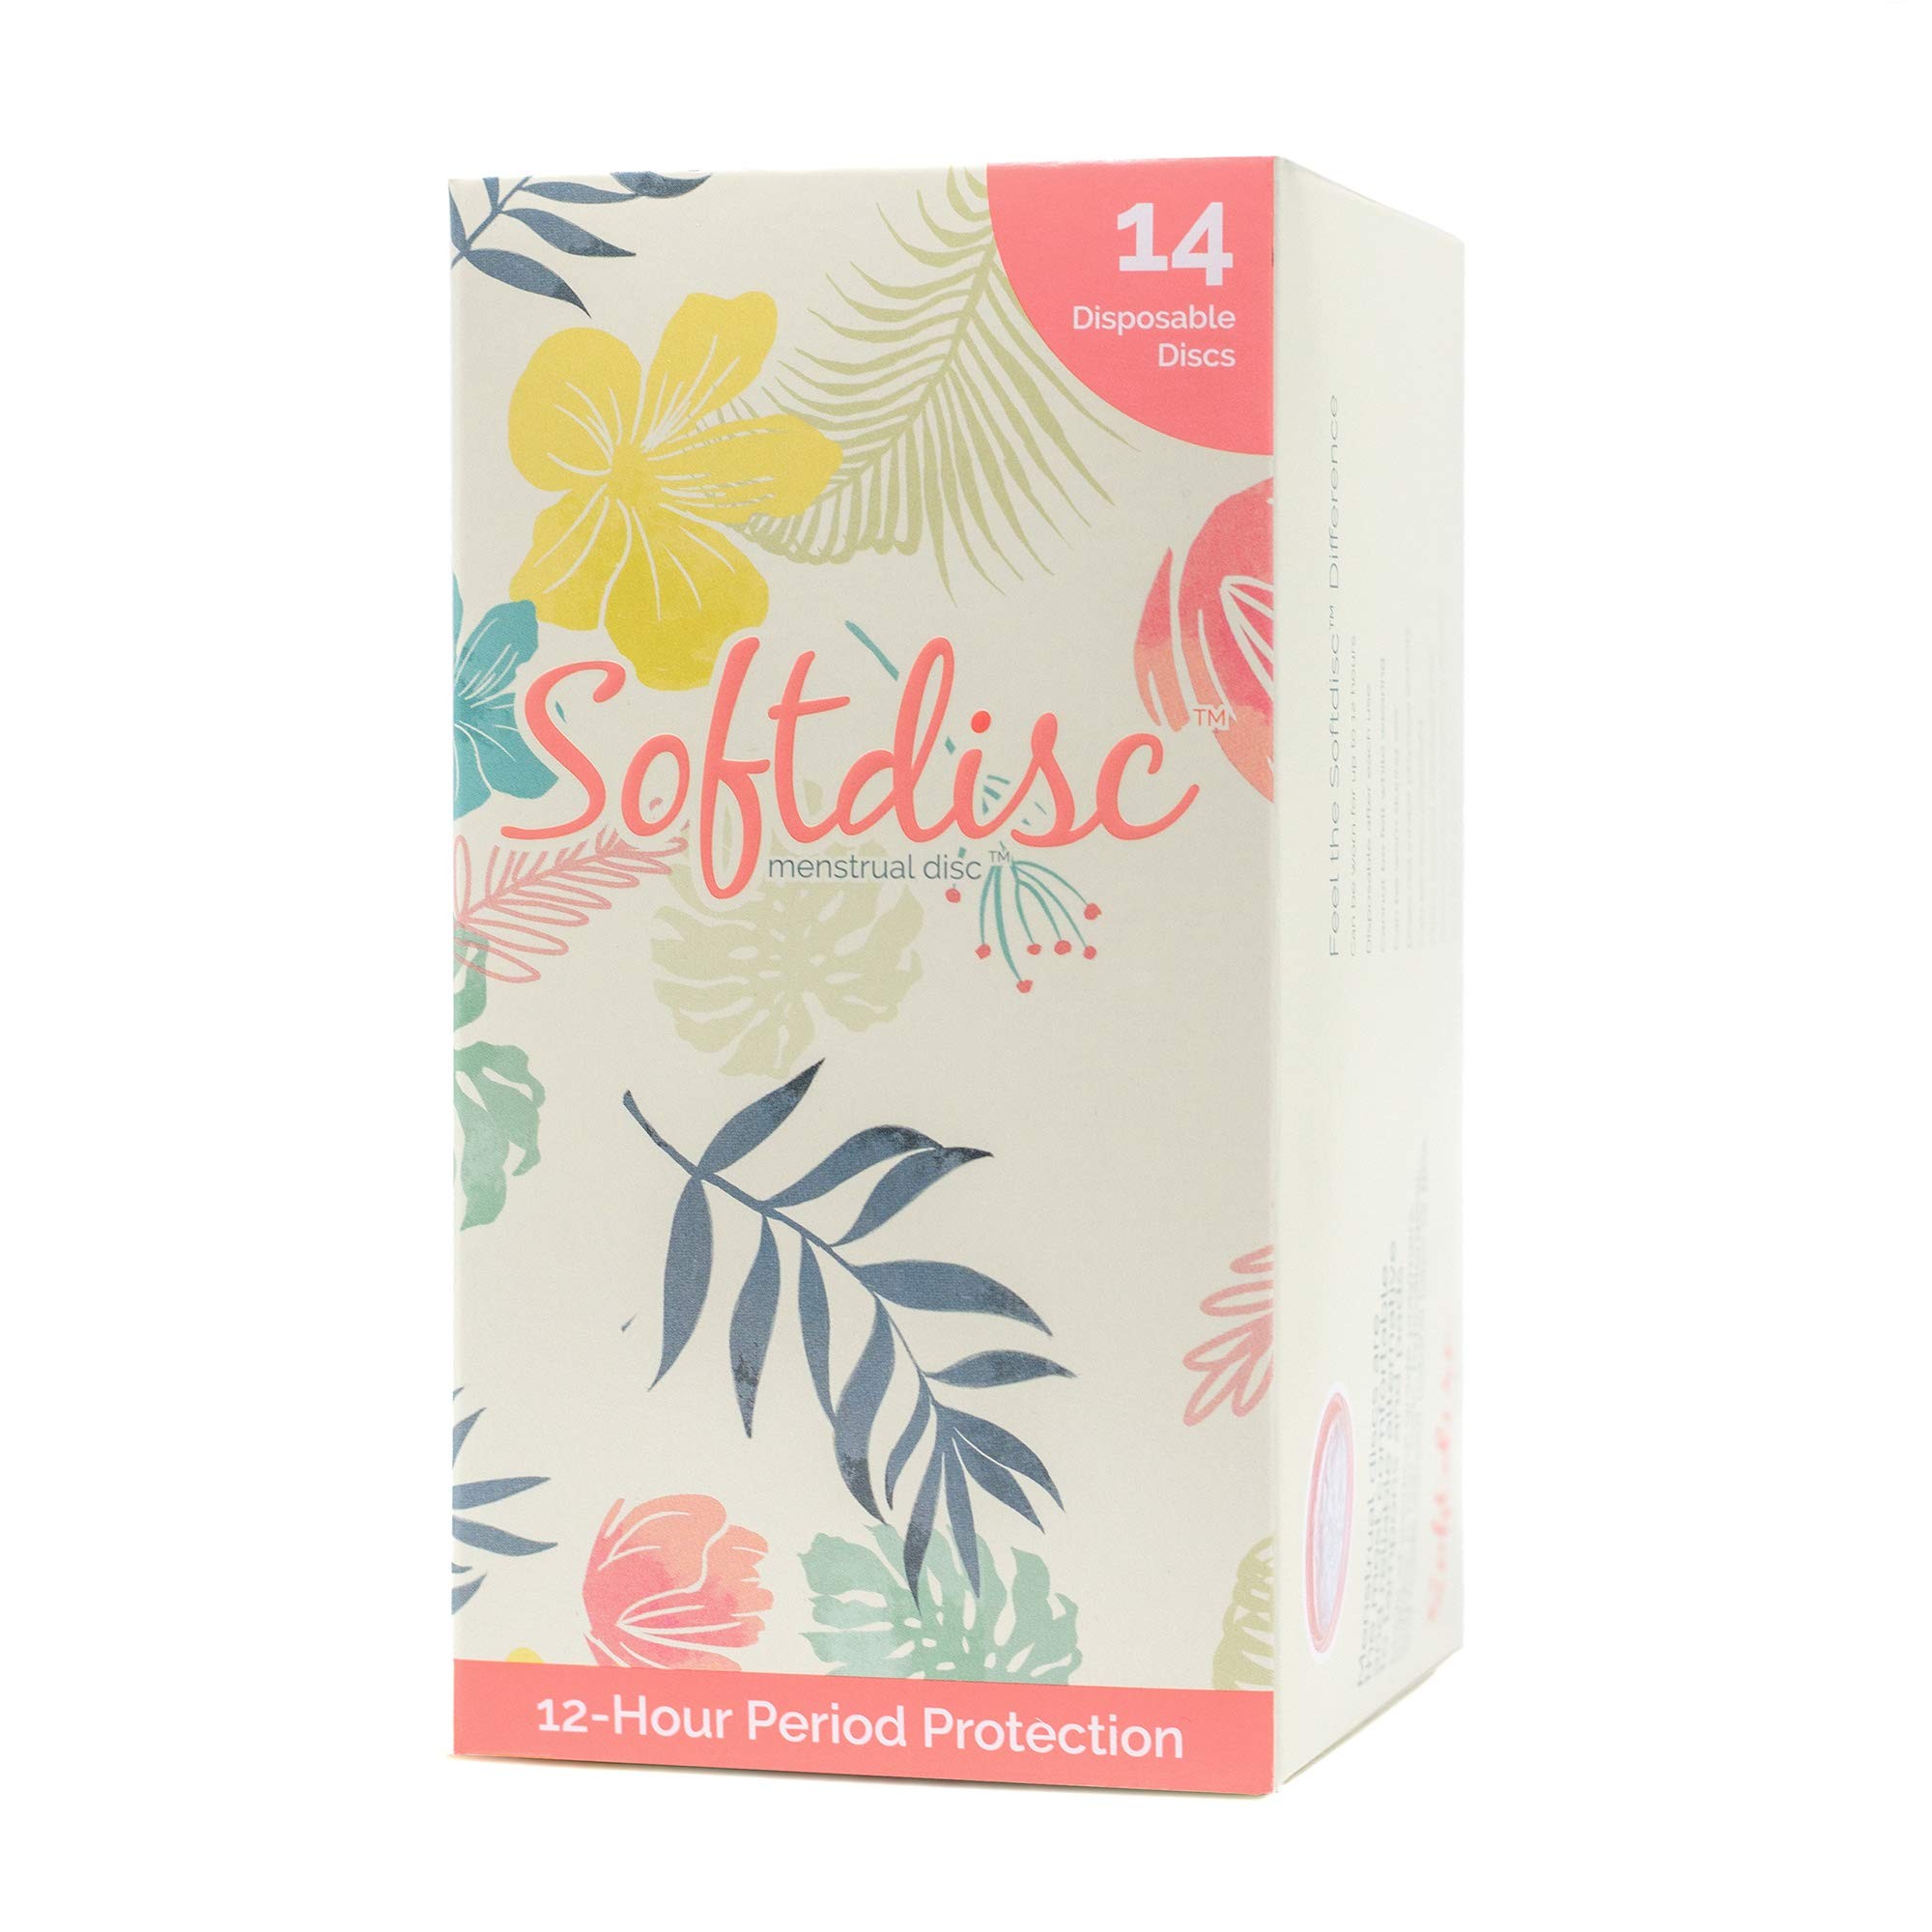 SOFTDISC - Menstrual Discs - Non-Reusable, Disposable Softcups - Enjoy up to 12 Hours of Protection - Fewer Period Cramps, Tampon and Menstrual Cup Alternative for Active Women 14 Disc Per Box by Softcup